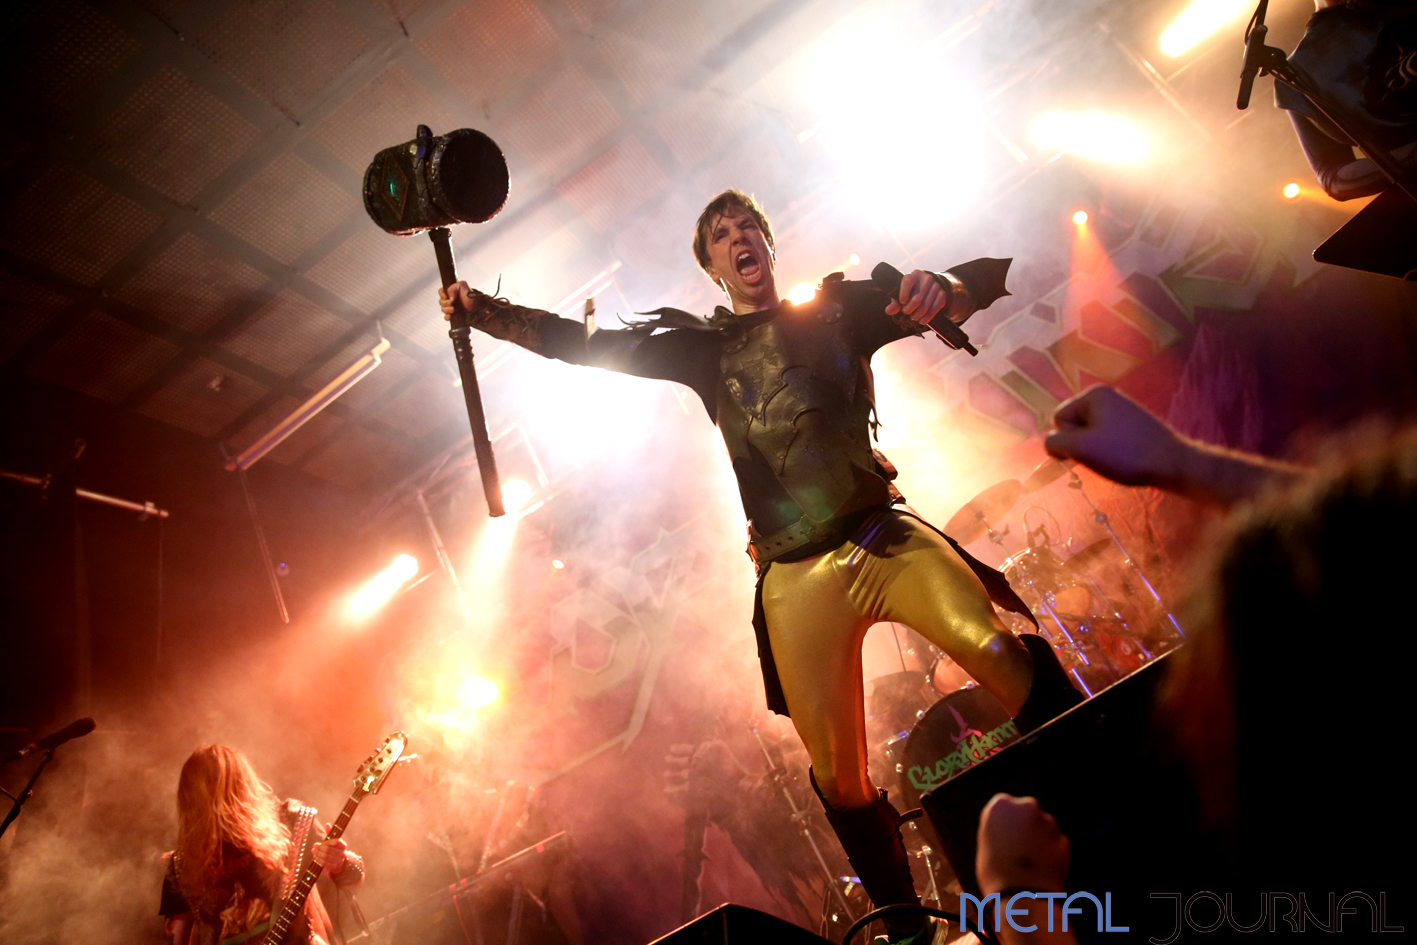 gloryhammer - metal journal 2018 pic 9